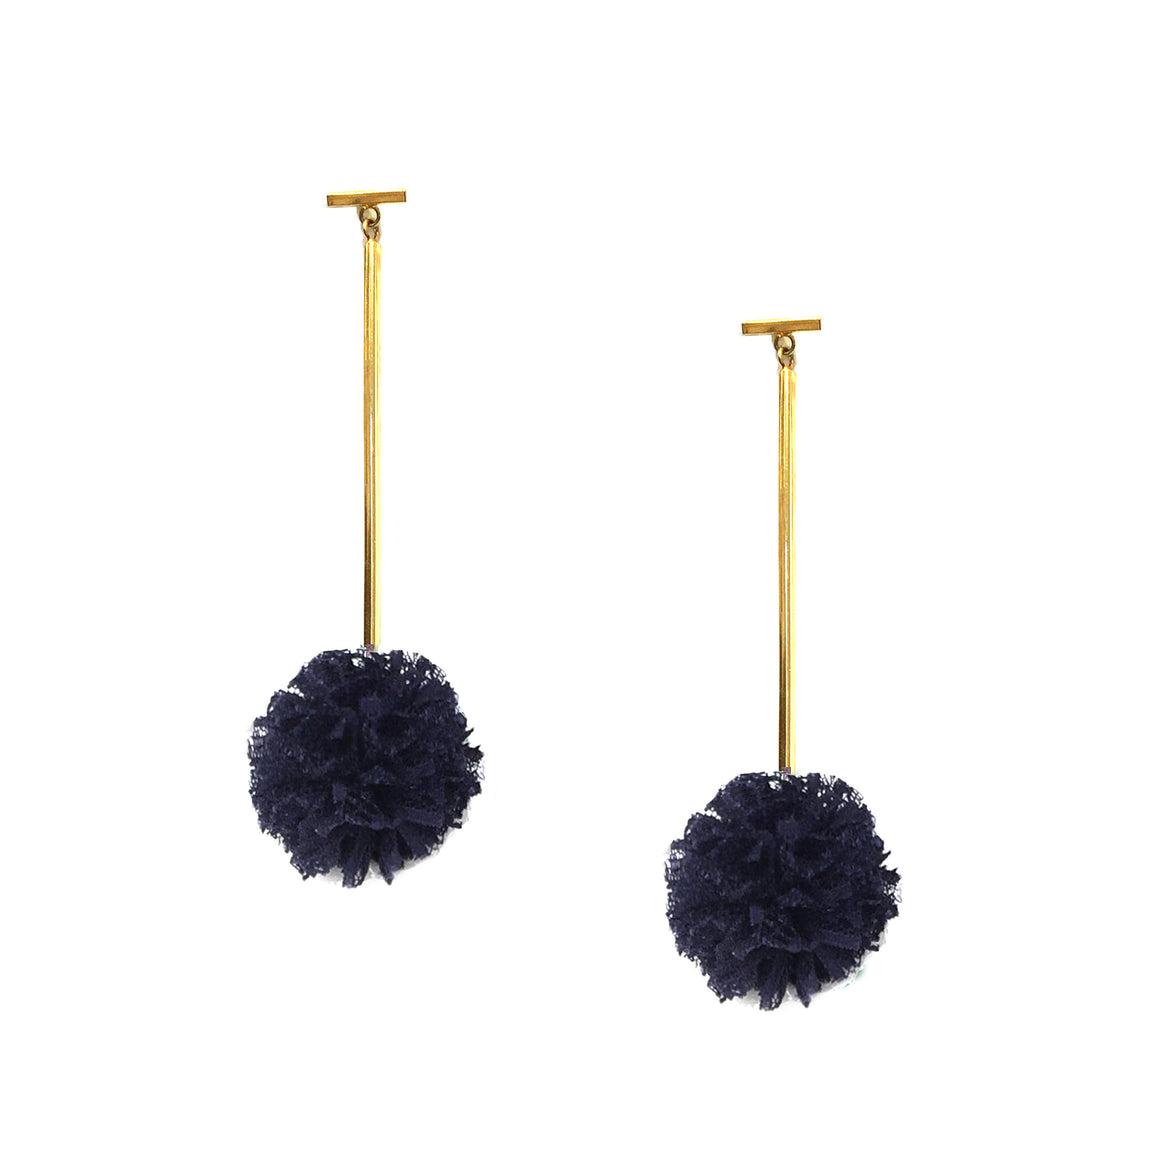 "Navy 1"" Lace Pom Pom T Bar Earrings, earring, Tuleste, Tuleste"